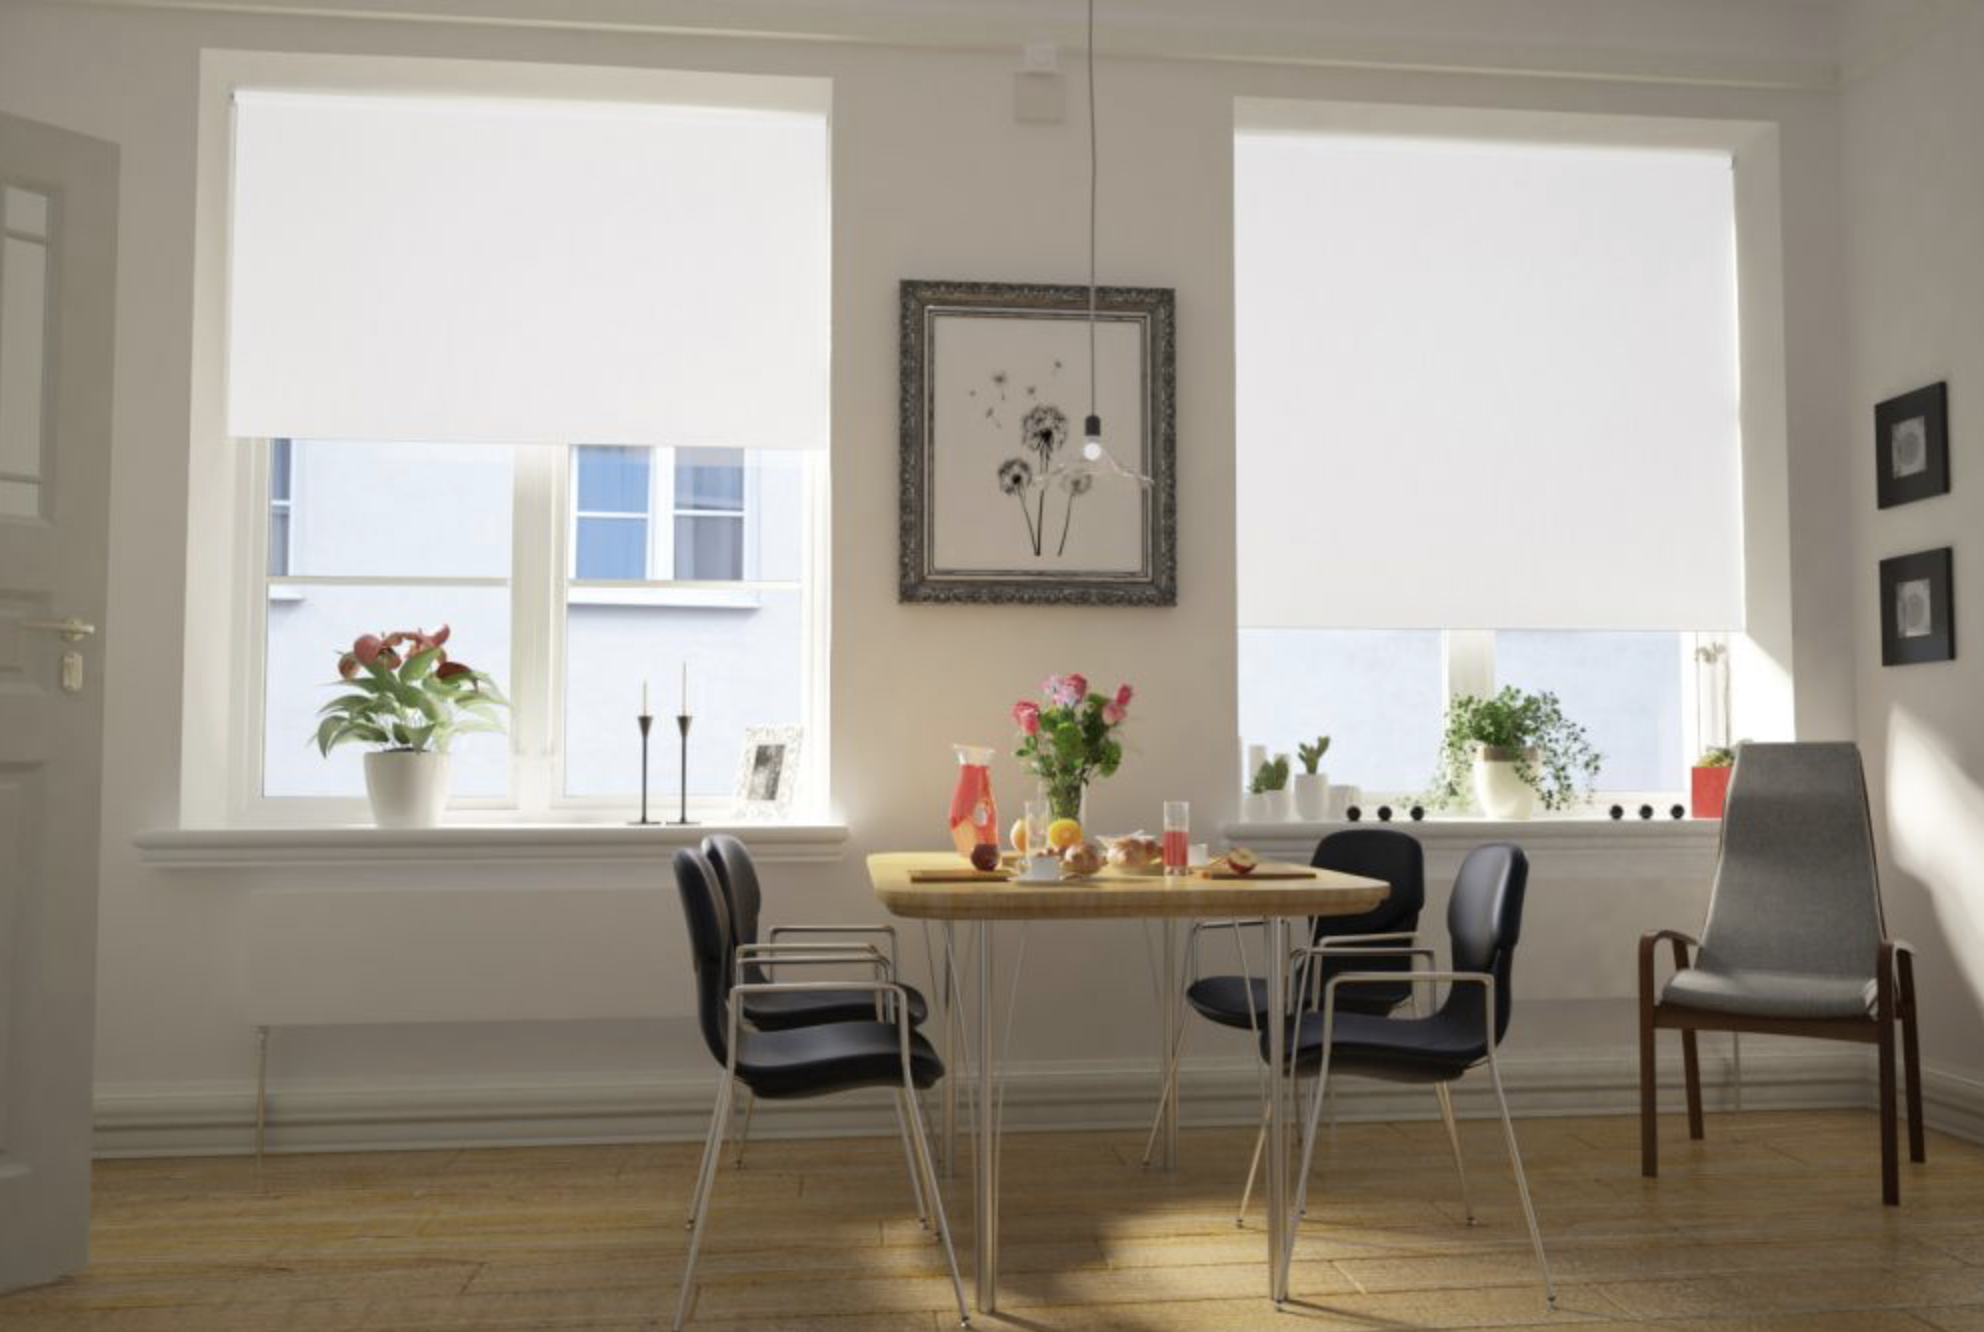 Roller blinds from dotcomblinds